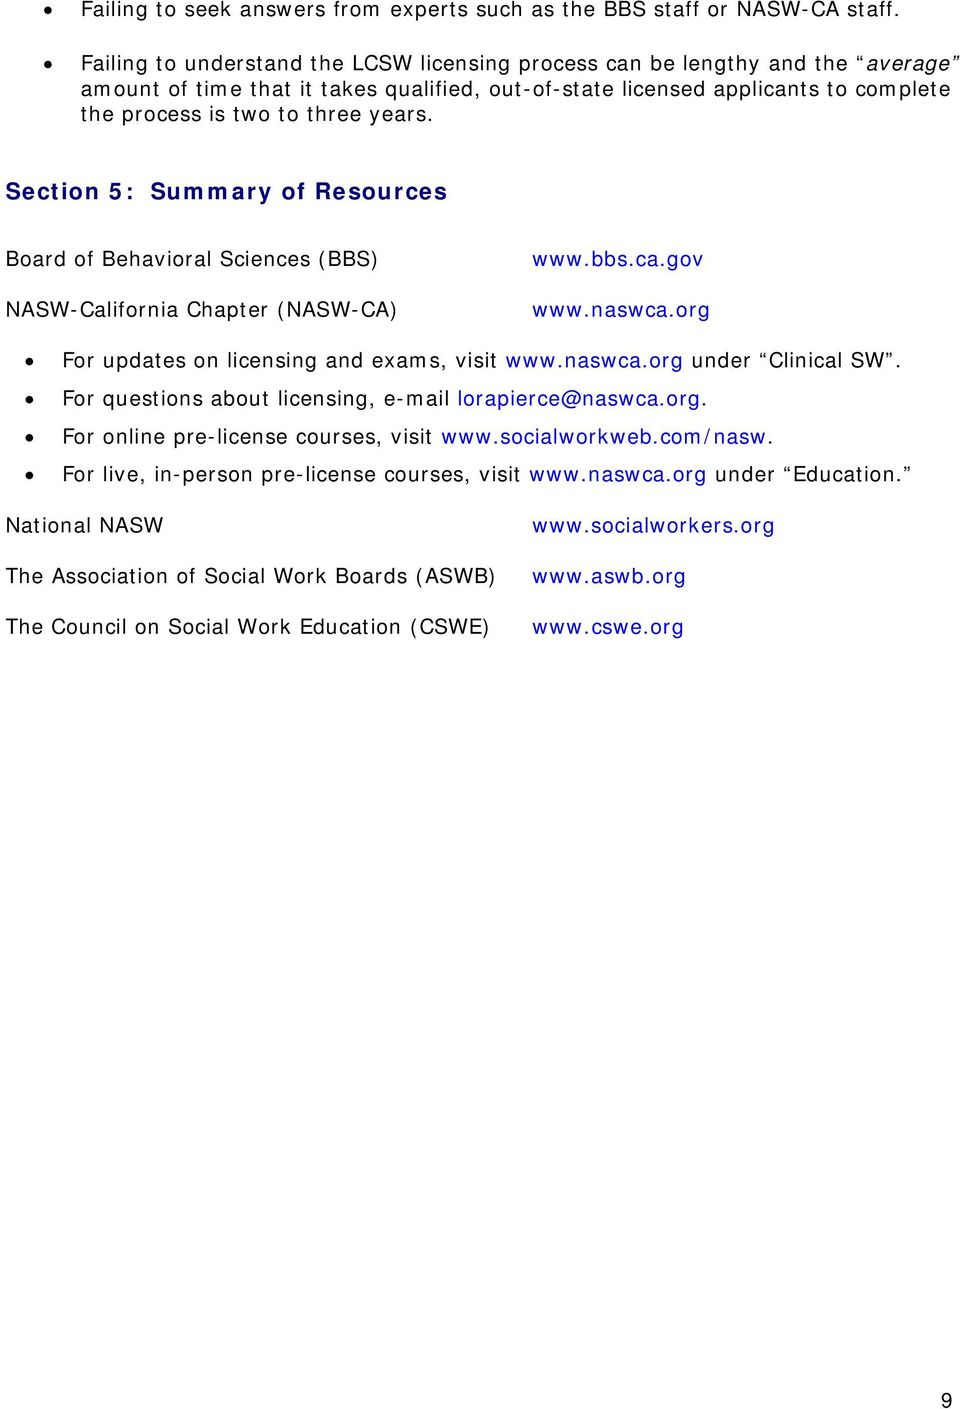 Section 5: Summary of Resources Board of Behavioral Sciences (BBS) NASW-California Chapter (NASW-CA) www.bbs.ca.gov www.naswca.org For updates on licensing and exams, visit www.naswca.org under Clinical SW.